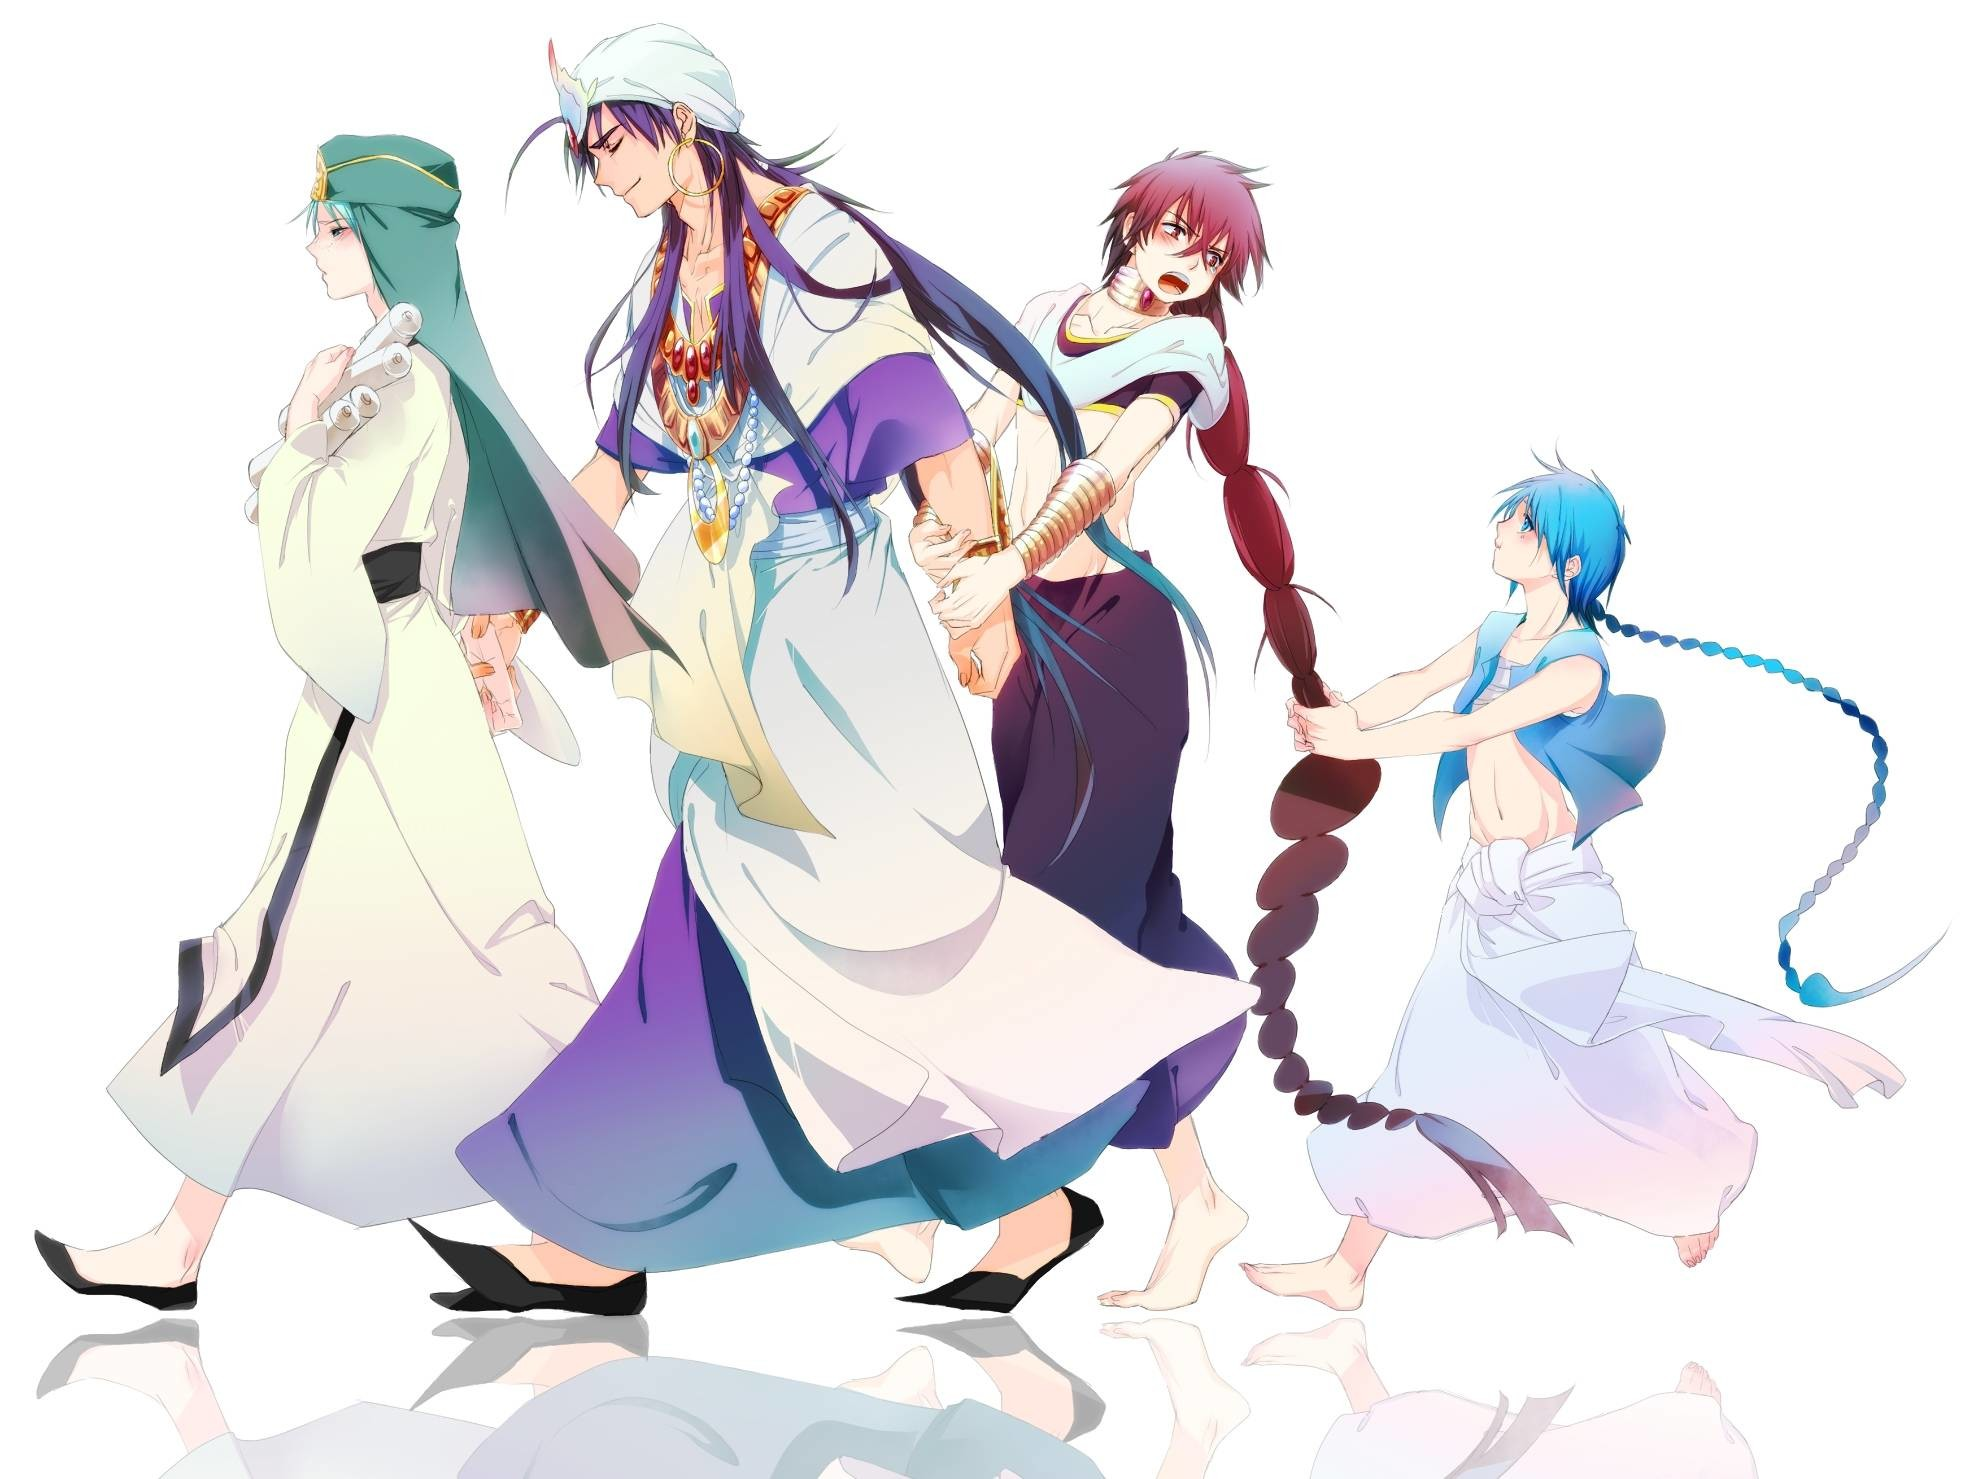 1920x1080 Magi: The Labyrinth of Magic 1080p HD Wallpaper Background